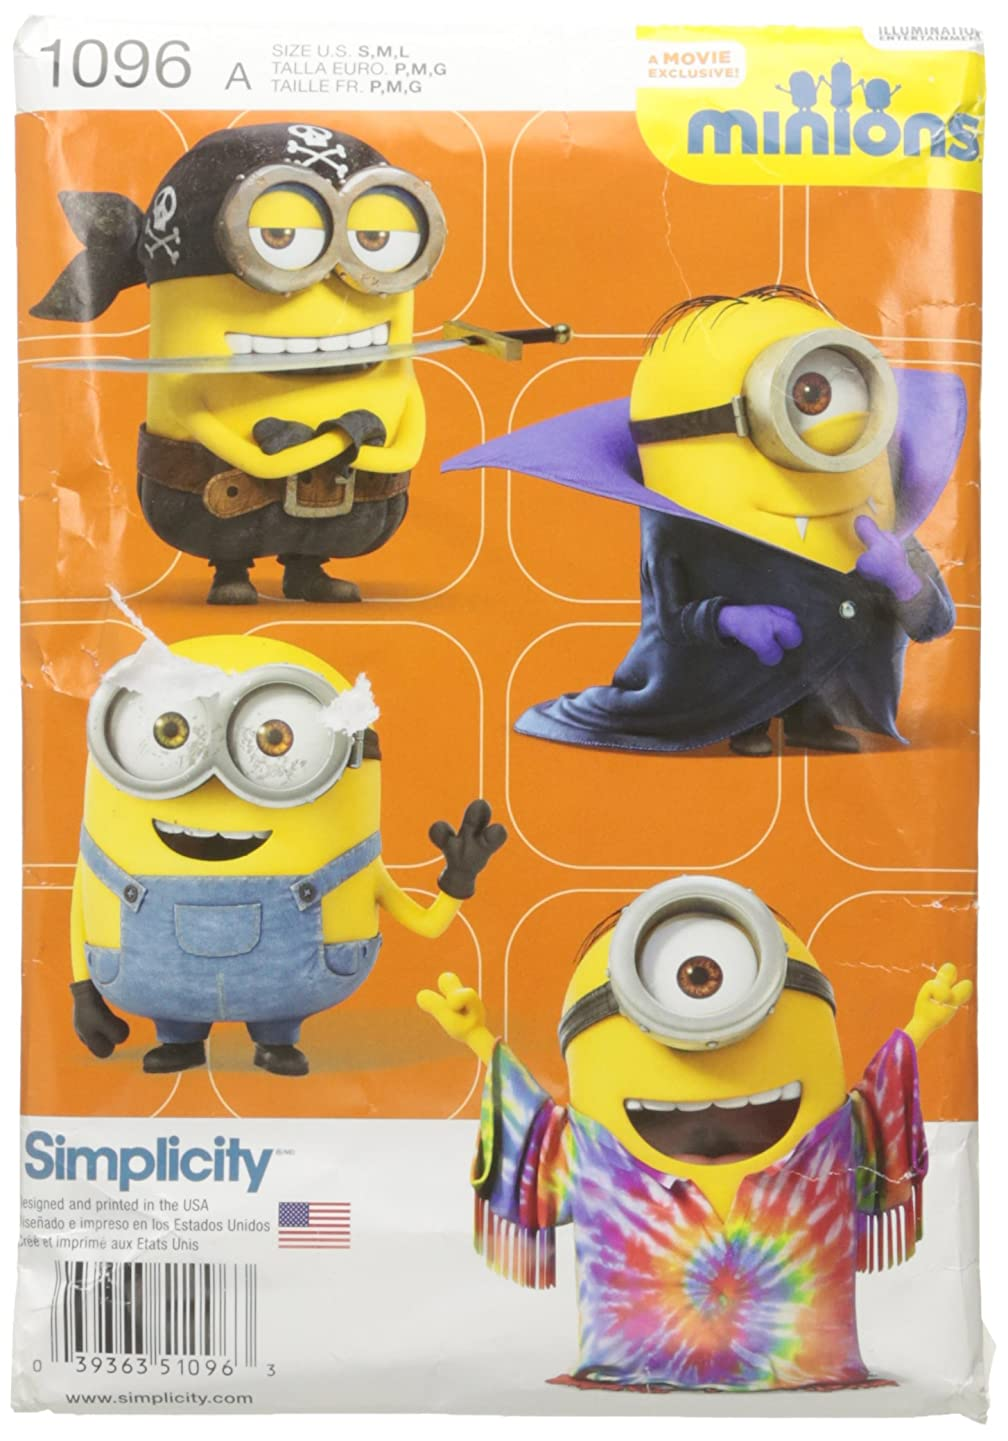 Simplicity Creative Patterns US1096A Childs Minion Costumes, Size A (S-M-L)